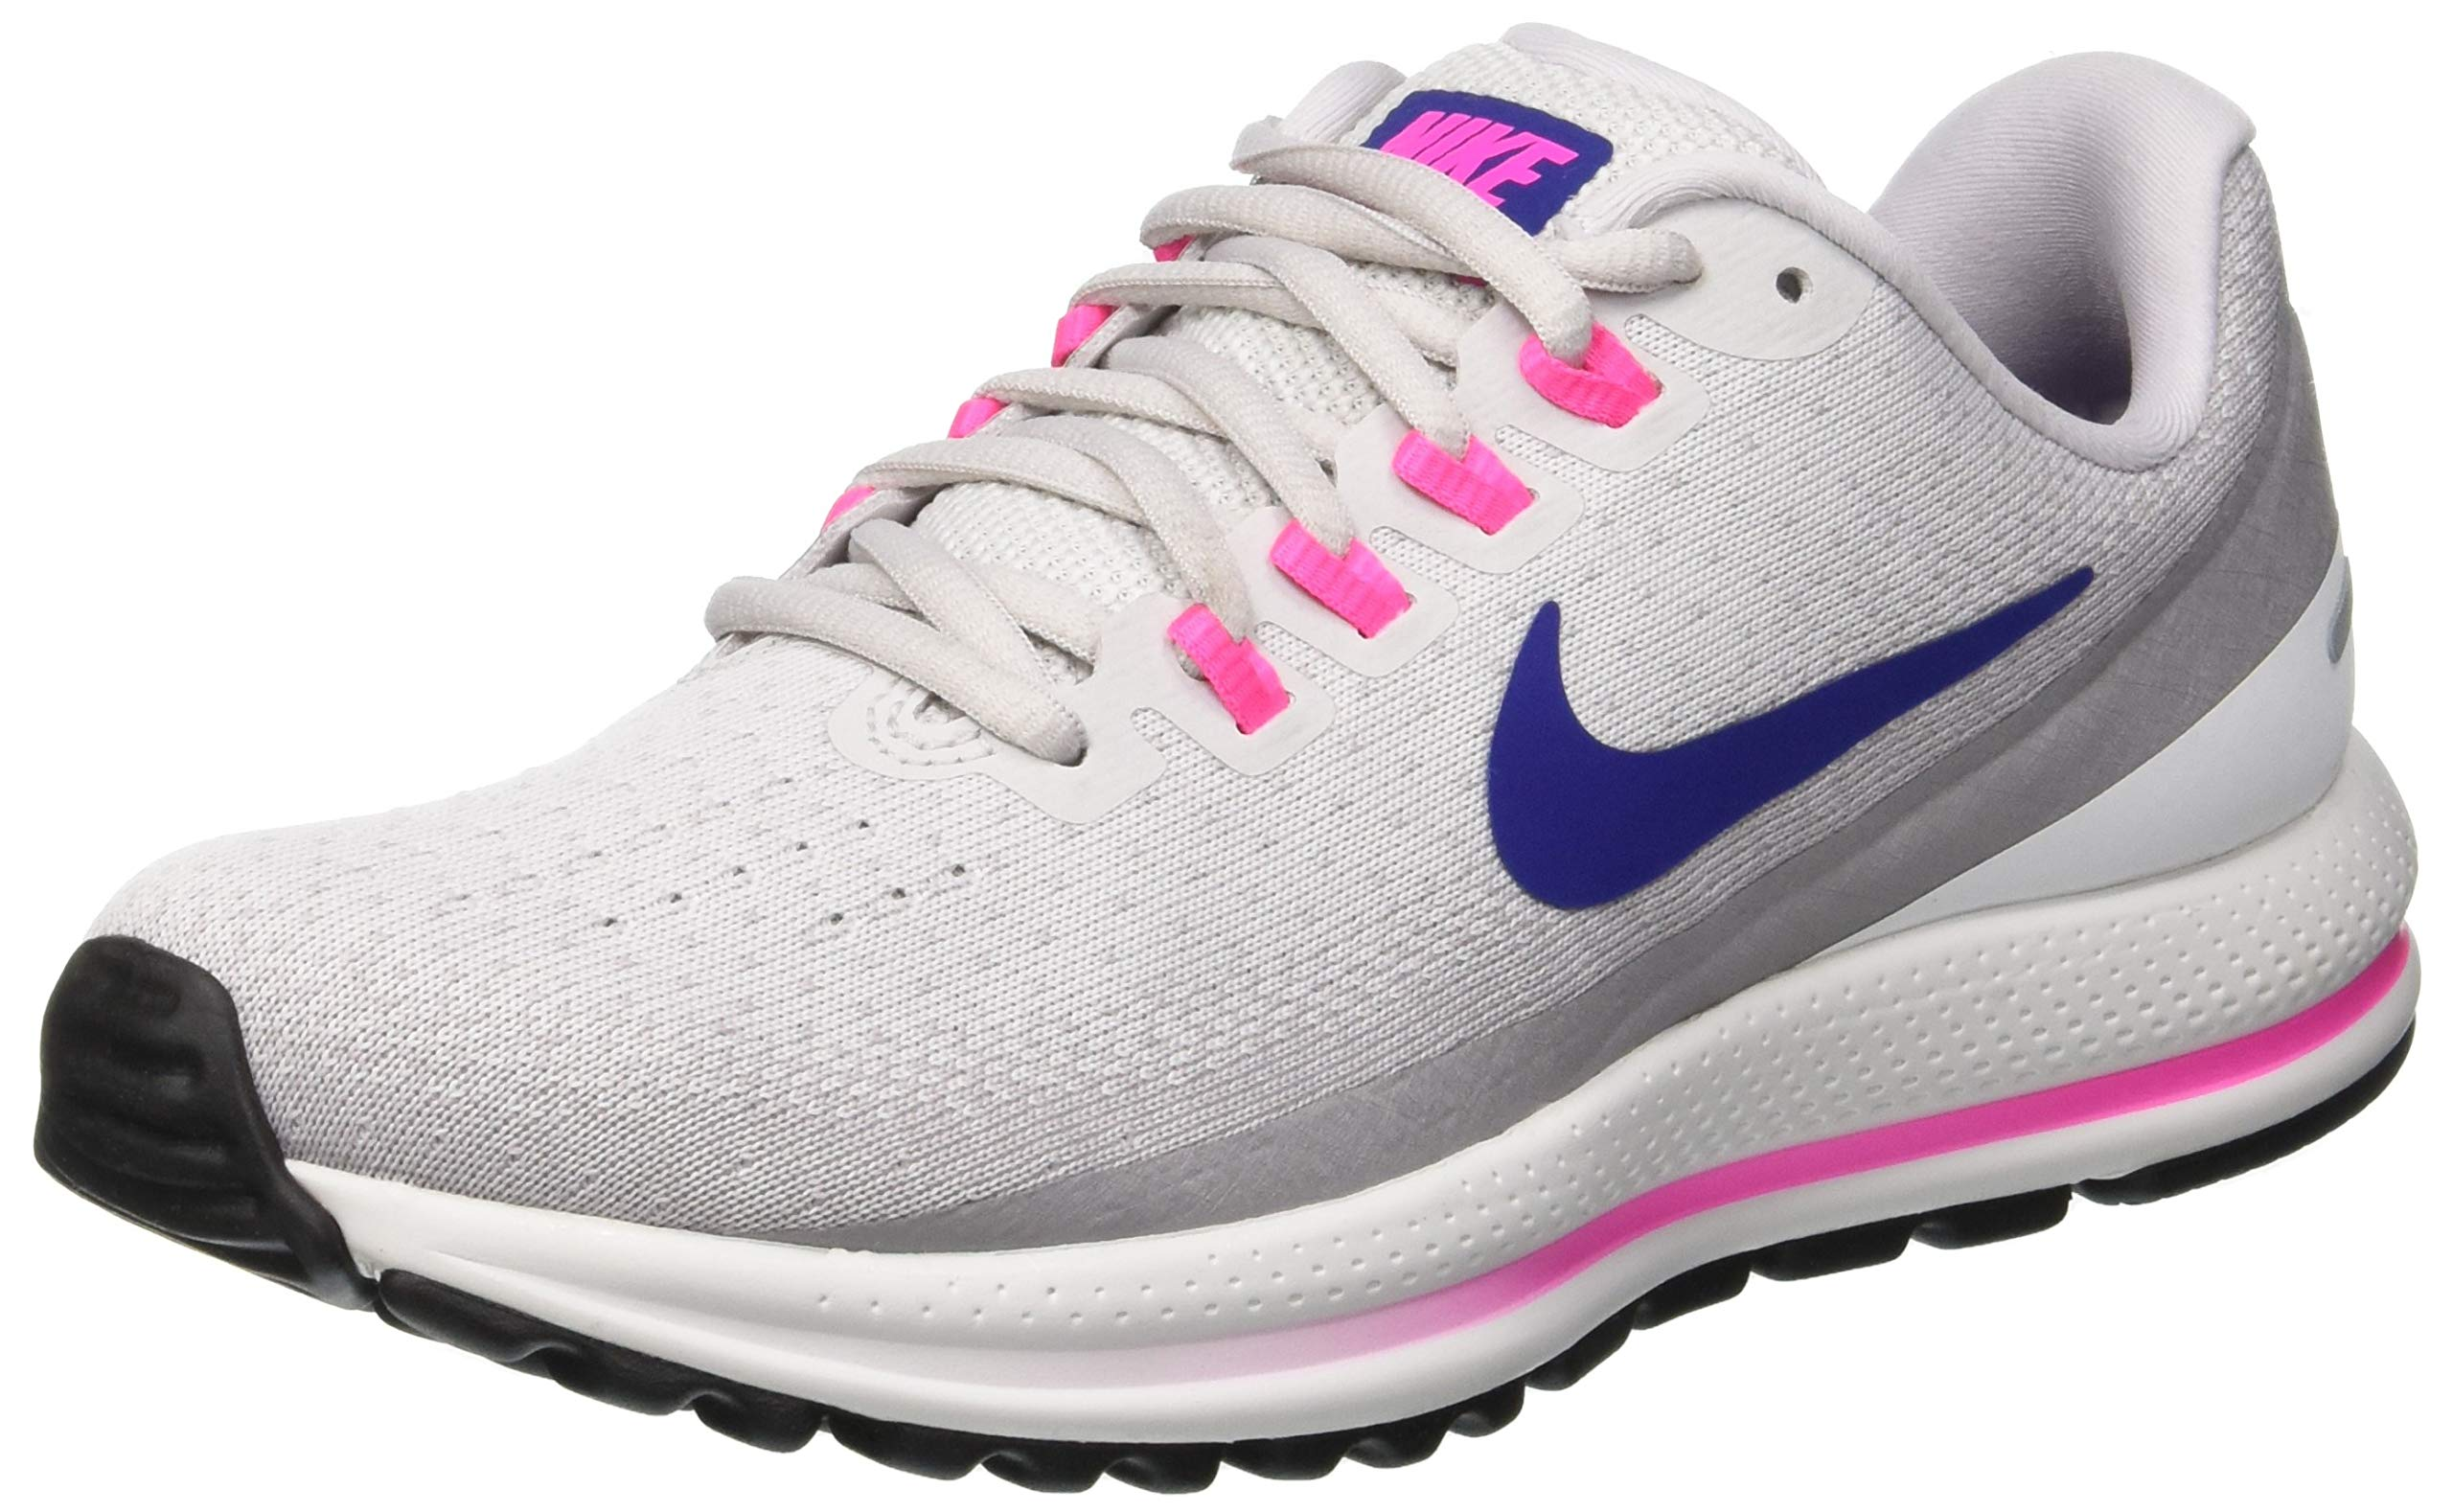 huge discount a9549 7d891 Galleon - NIKE Women s Air Zoom Vomero 13 Running Shoe Vast Grey Deep Royal  Blue Size 6.5 M US